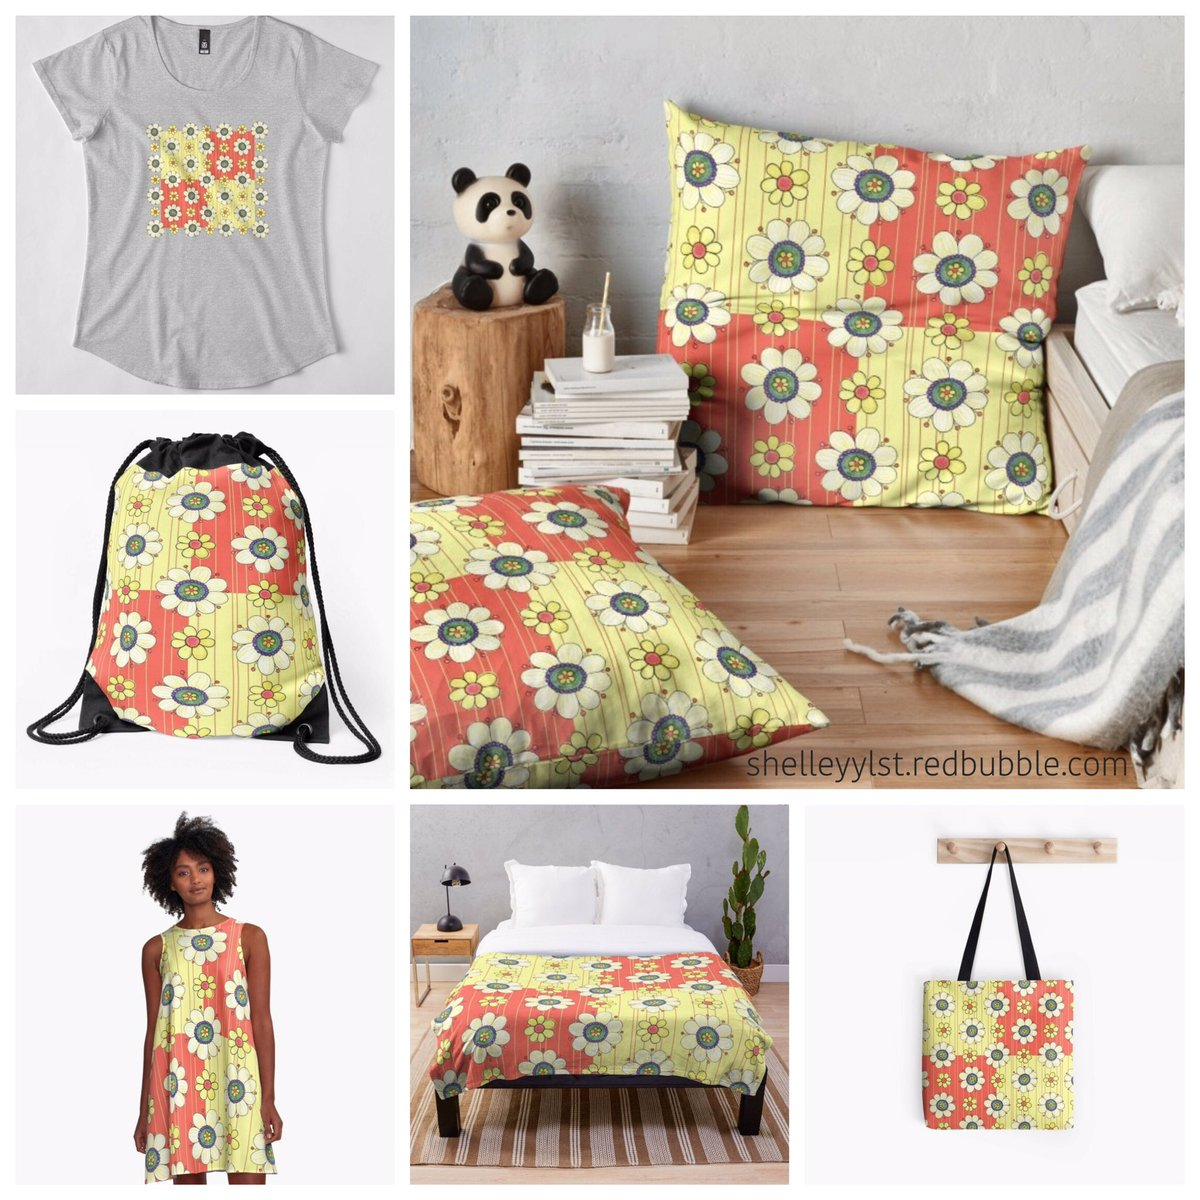 A cheerful and summery design in to add some brightness to your life! See all the fun products you can get it printed on in my Redbubble Shop here 👉 https://rdbl.co/31W97XR http://shelleyylstart.redbubble.com #flowers  #decor #tshirt  #dress #pillow #floorpillow #blanket #bedding #totebag